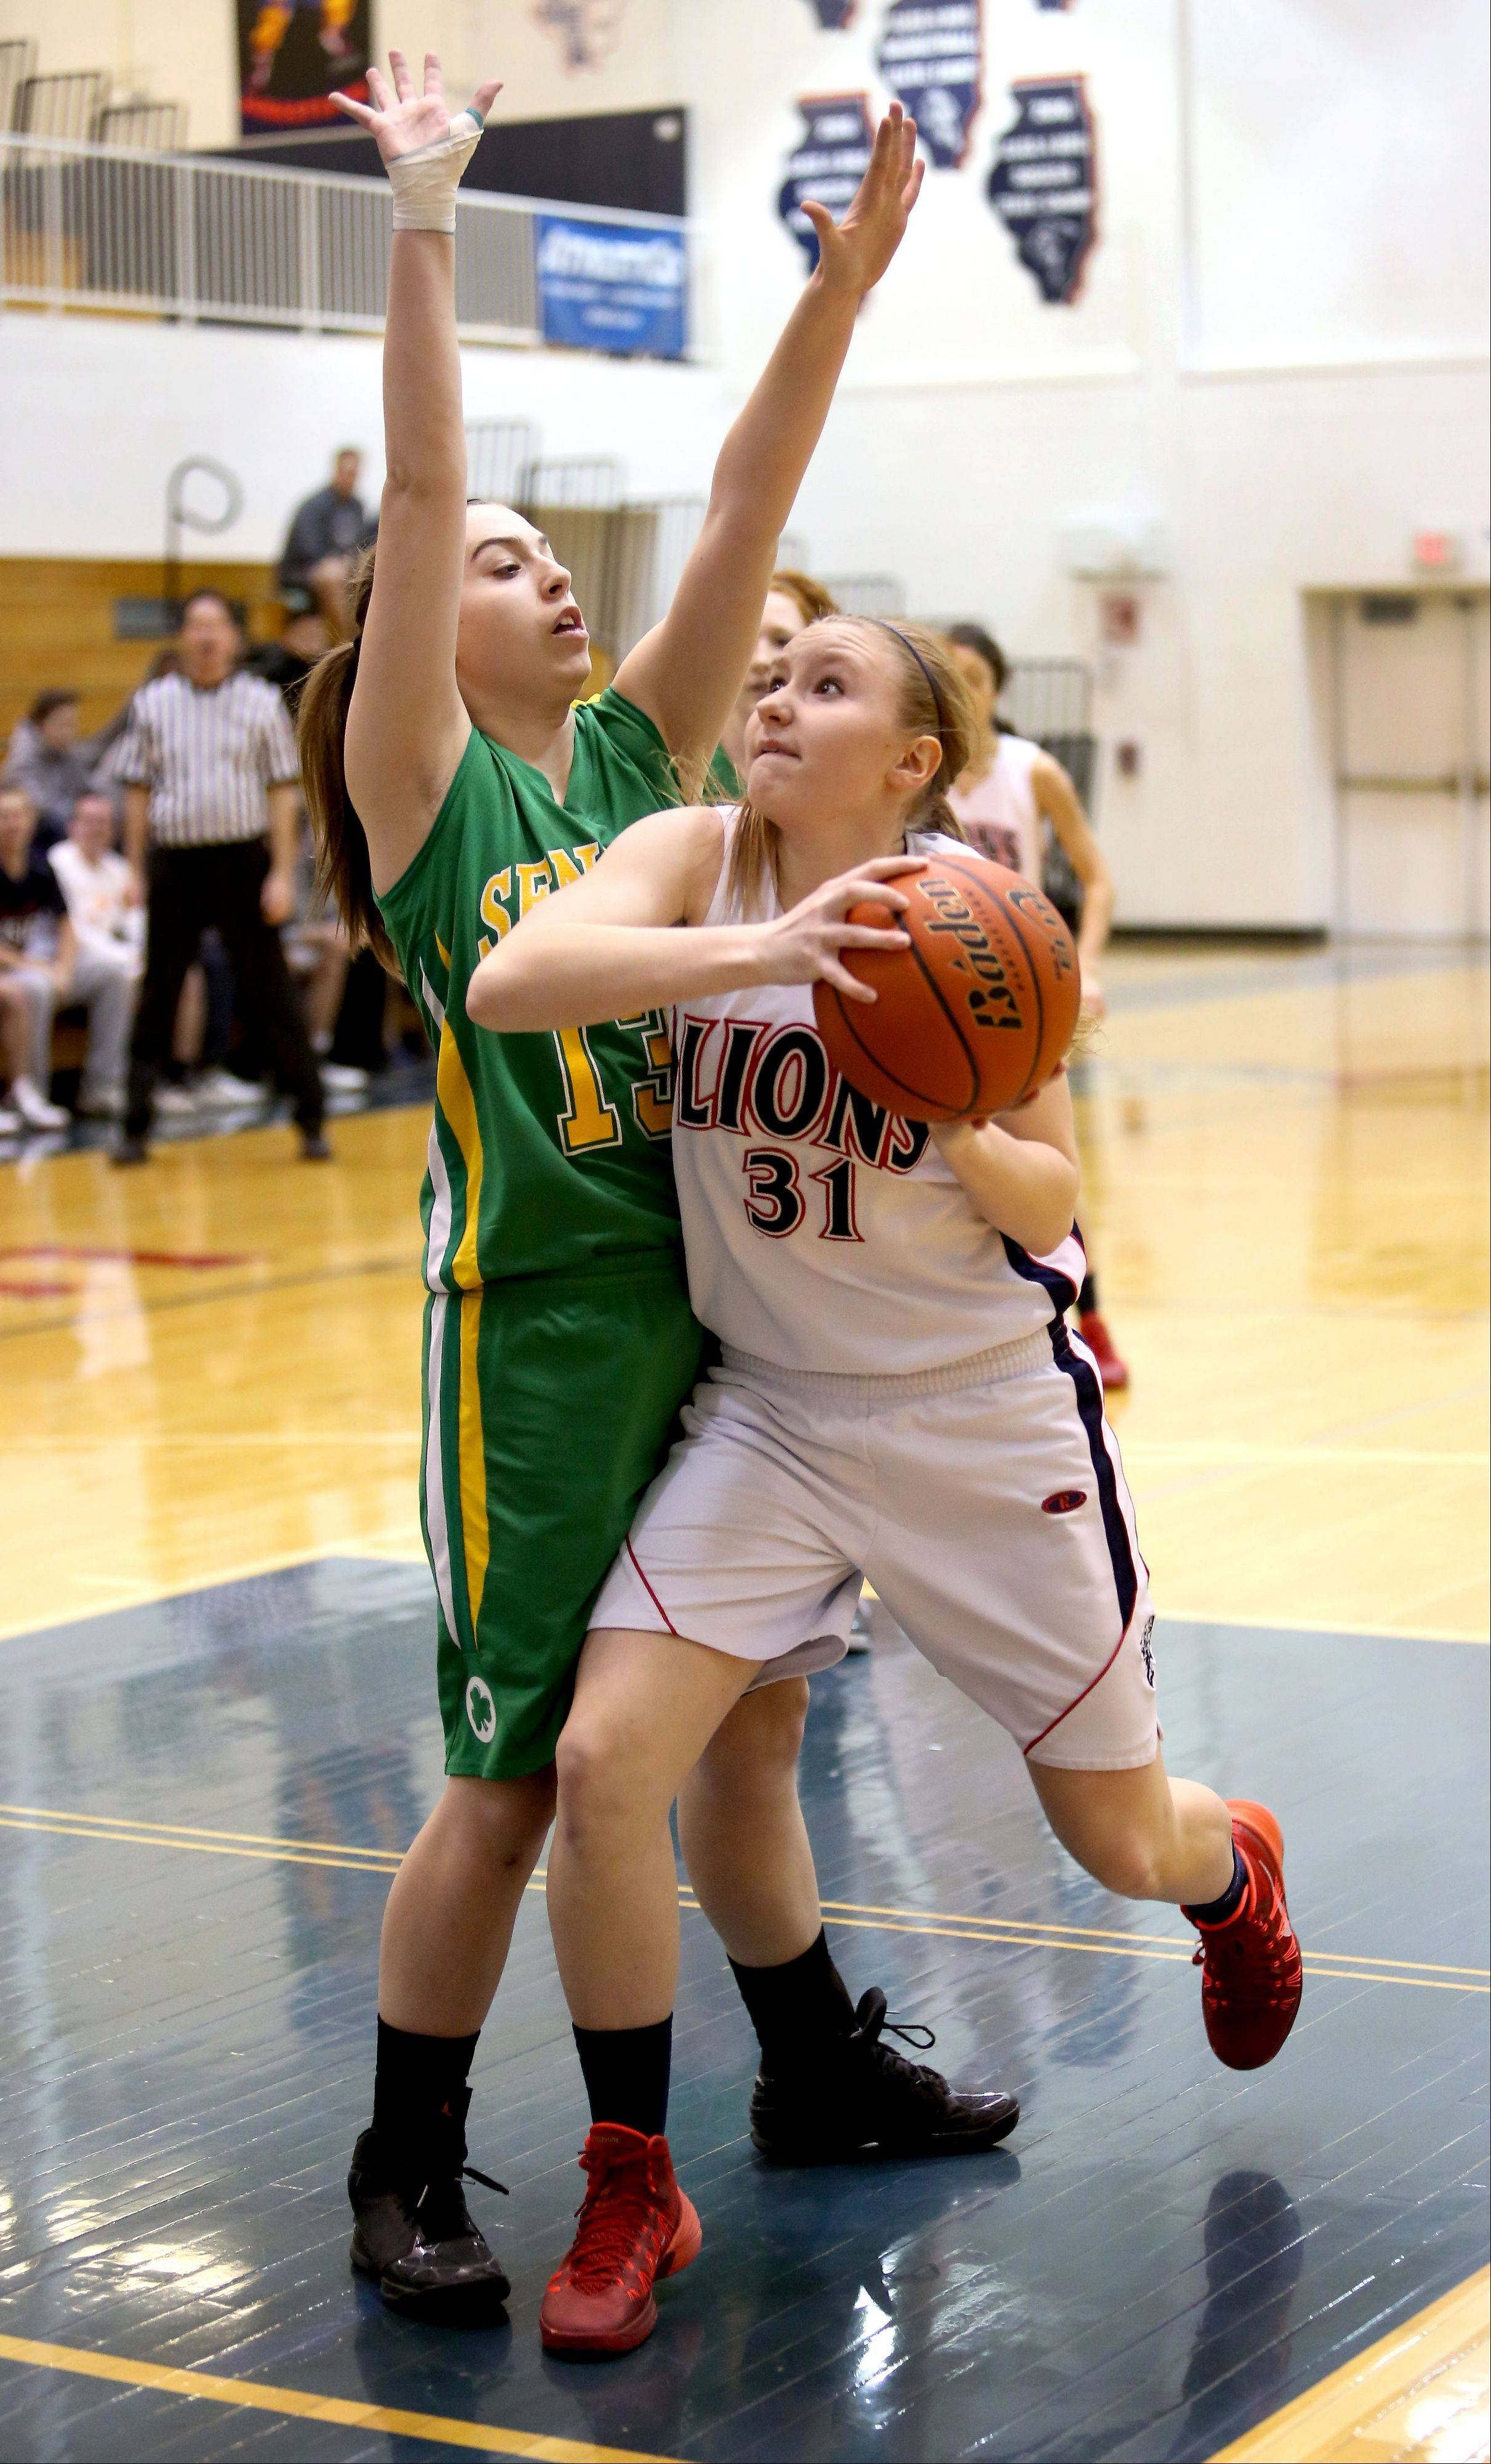 Lisle's Sarah Morgensen, right, looks to shoot as Seneca's Daniell Hauch defends.